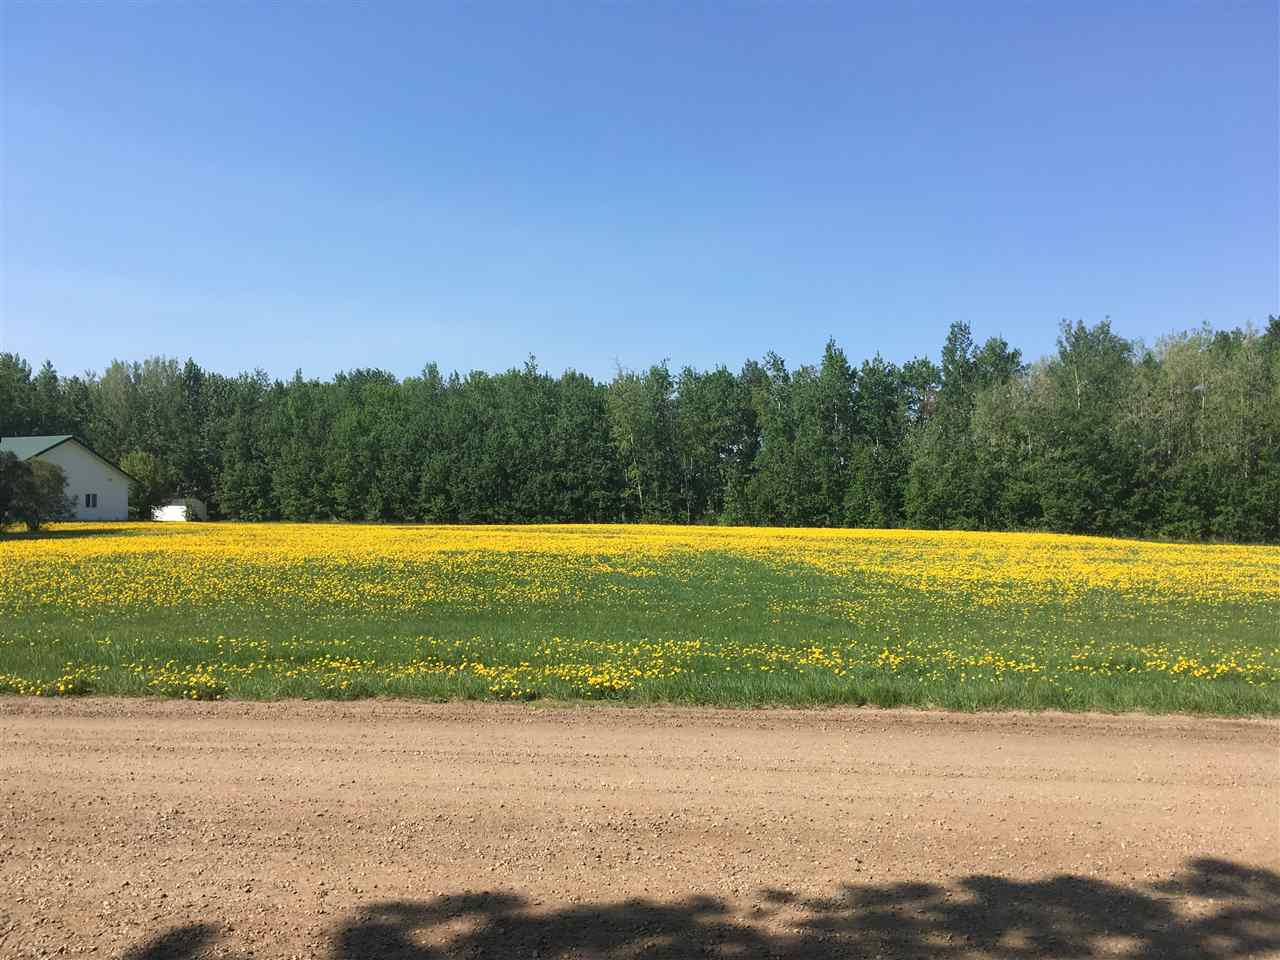 2 acre (+/-) Lot in the Village of Warburg. Located approx. 30 mins from Leduc, Drayton Valley, Stony Plain, Nisku and the Edmonton International Airport and 15 minutes from Pigeon Lake and Genesee Power Plant. Great Potential for this lot which is situated between a Church and Town owned land! Great Potential to Subdivide!